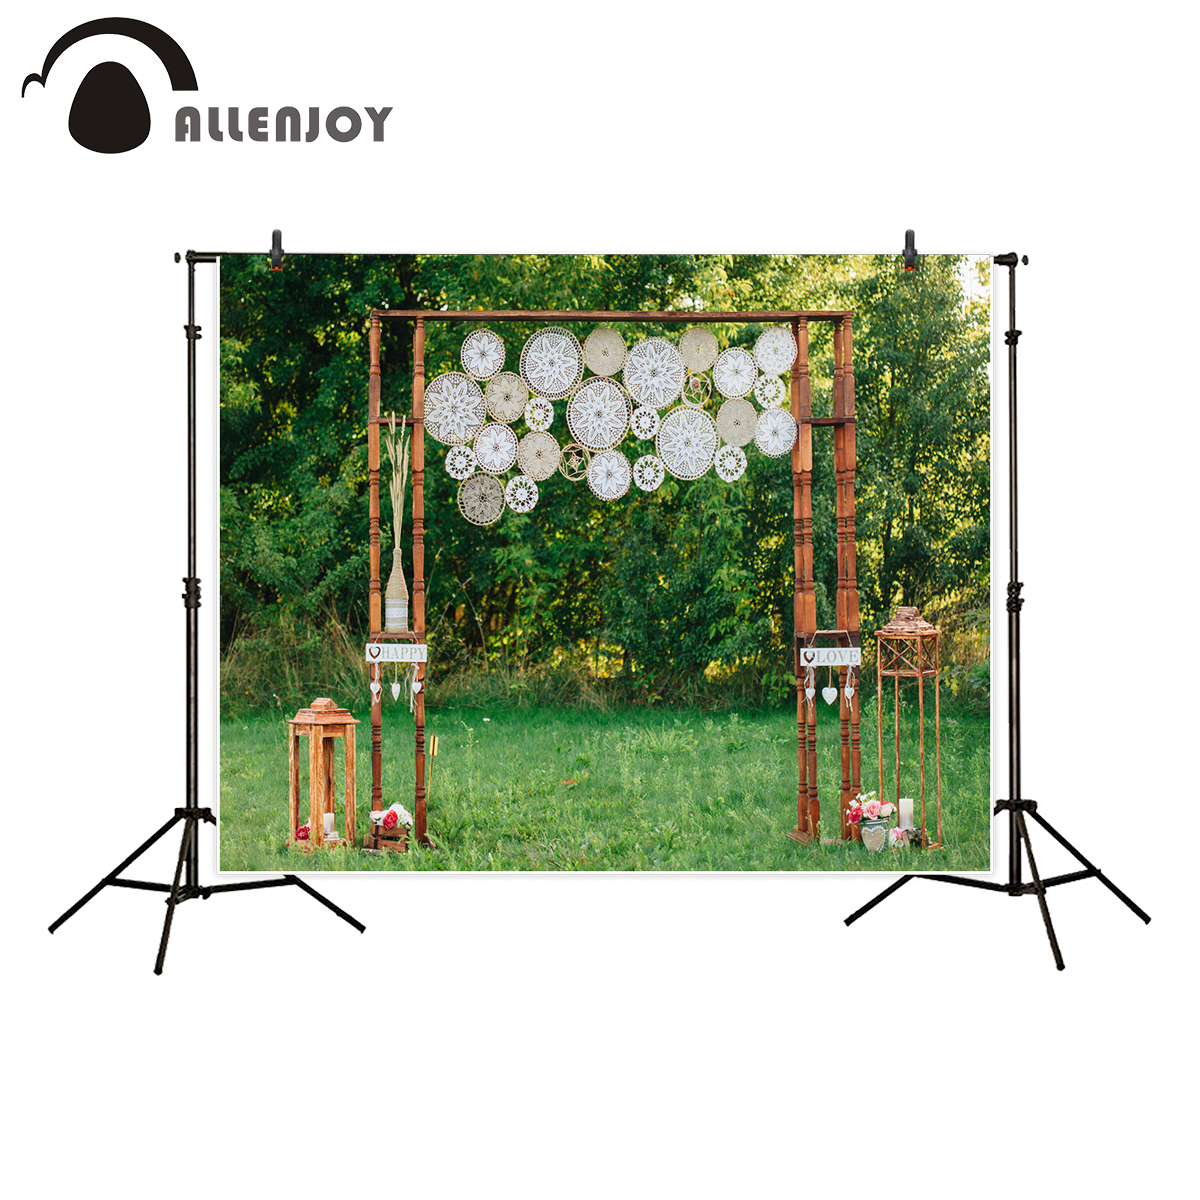 Allenjoy professional photography background Romantic Valentine's Day wedding decorated spring backdrop photo studio photocall allenjoy photography backdrop library books student child newborn photo studio photocall background original design